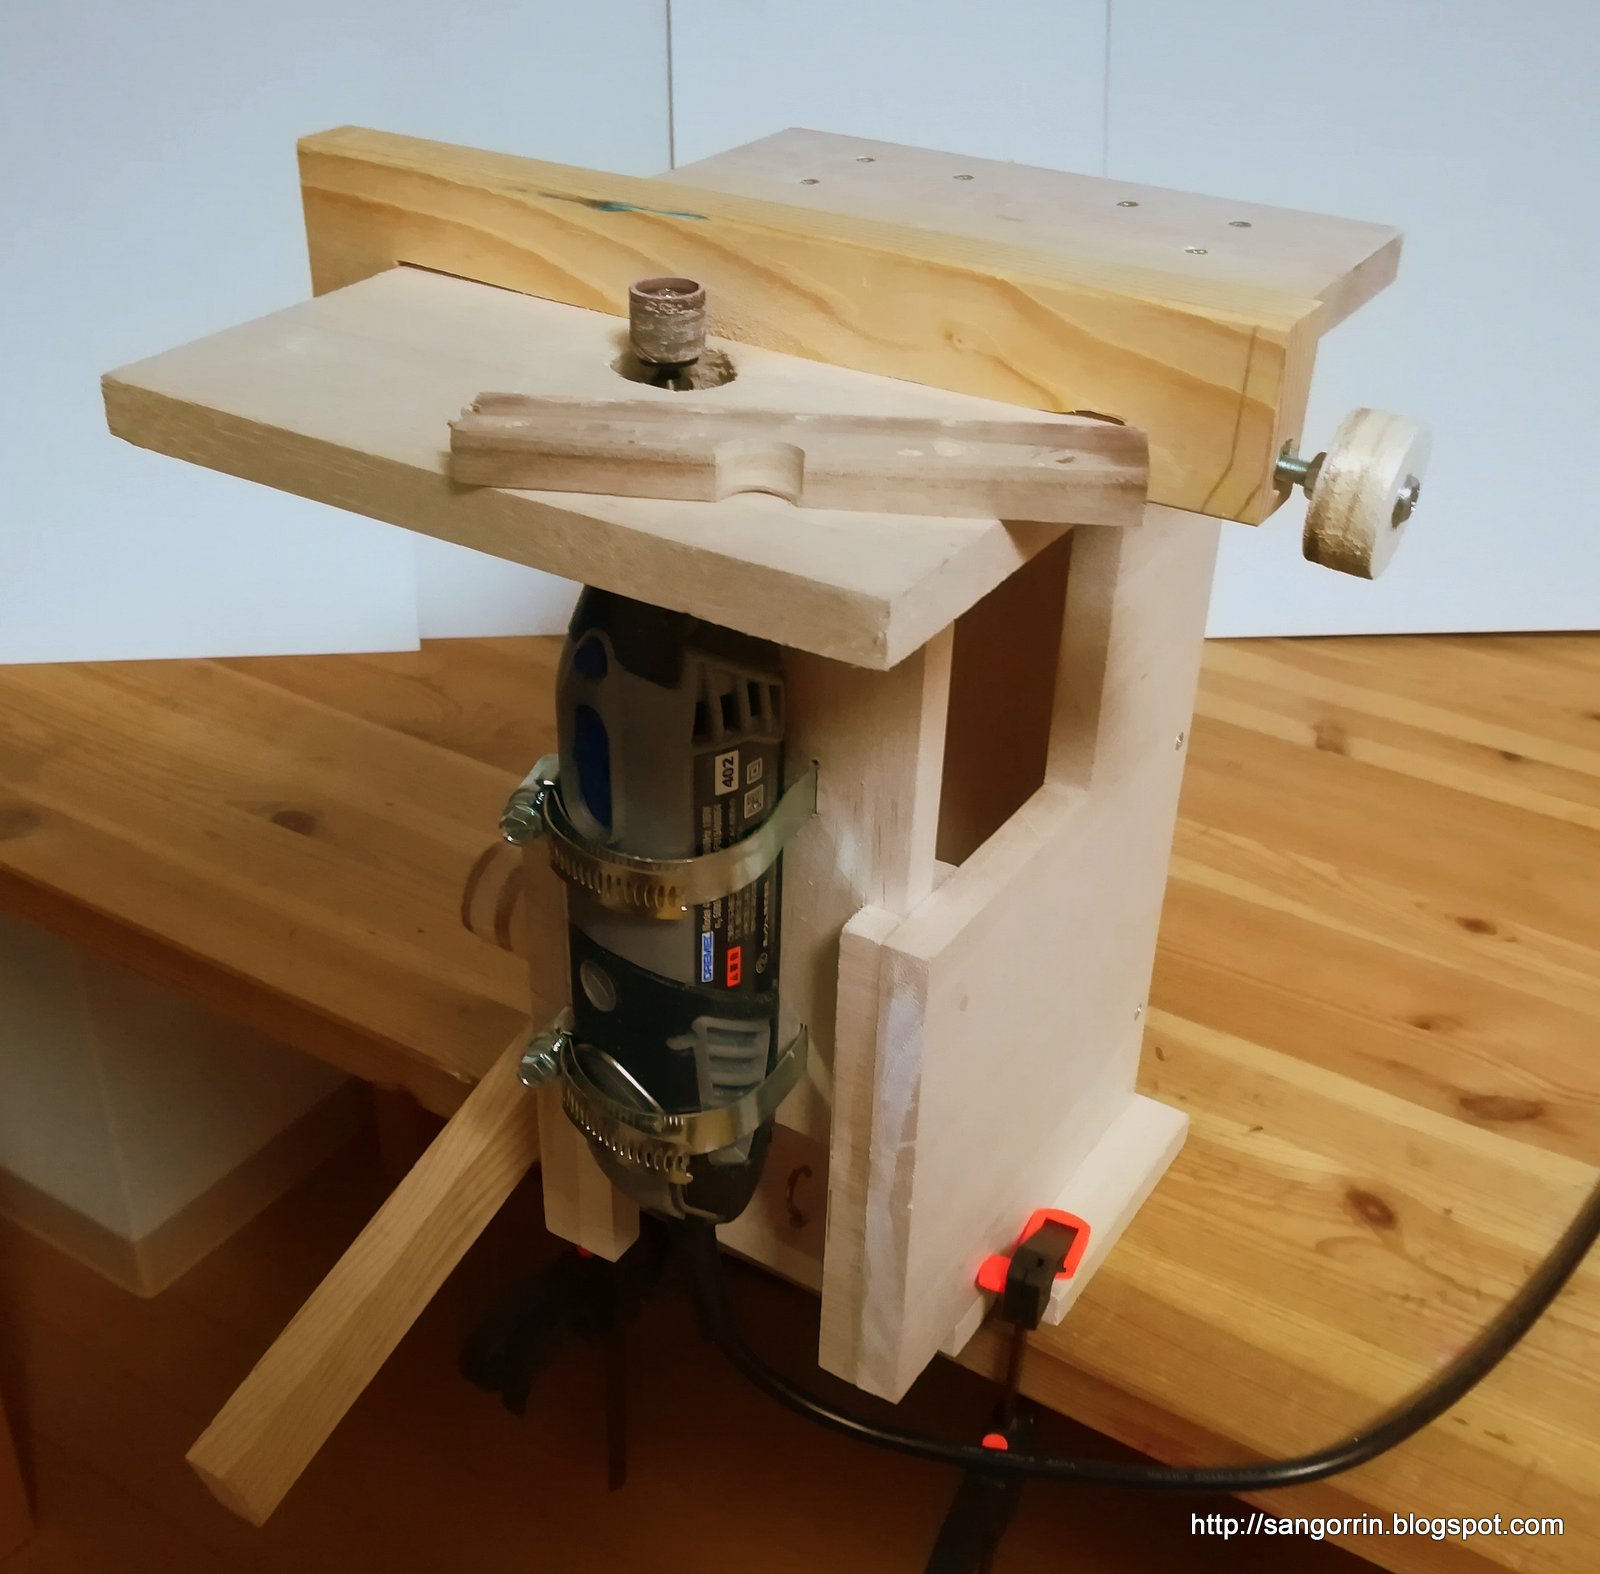 Sangorrin diy mini drill press and router table all in one for Diy dremel router table